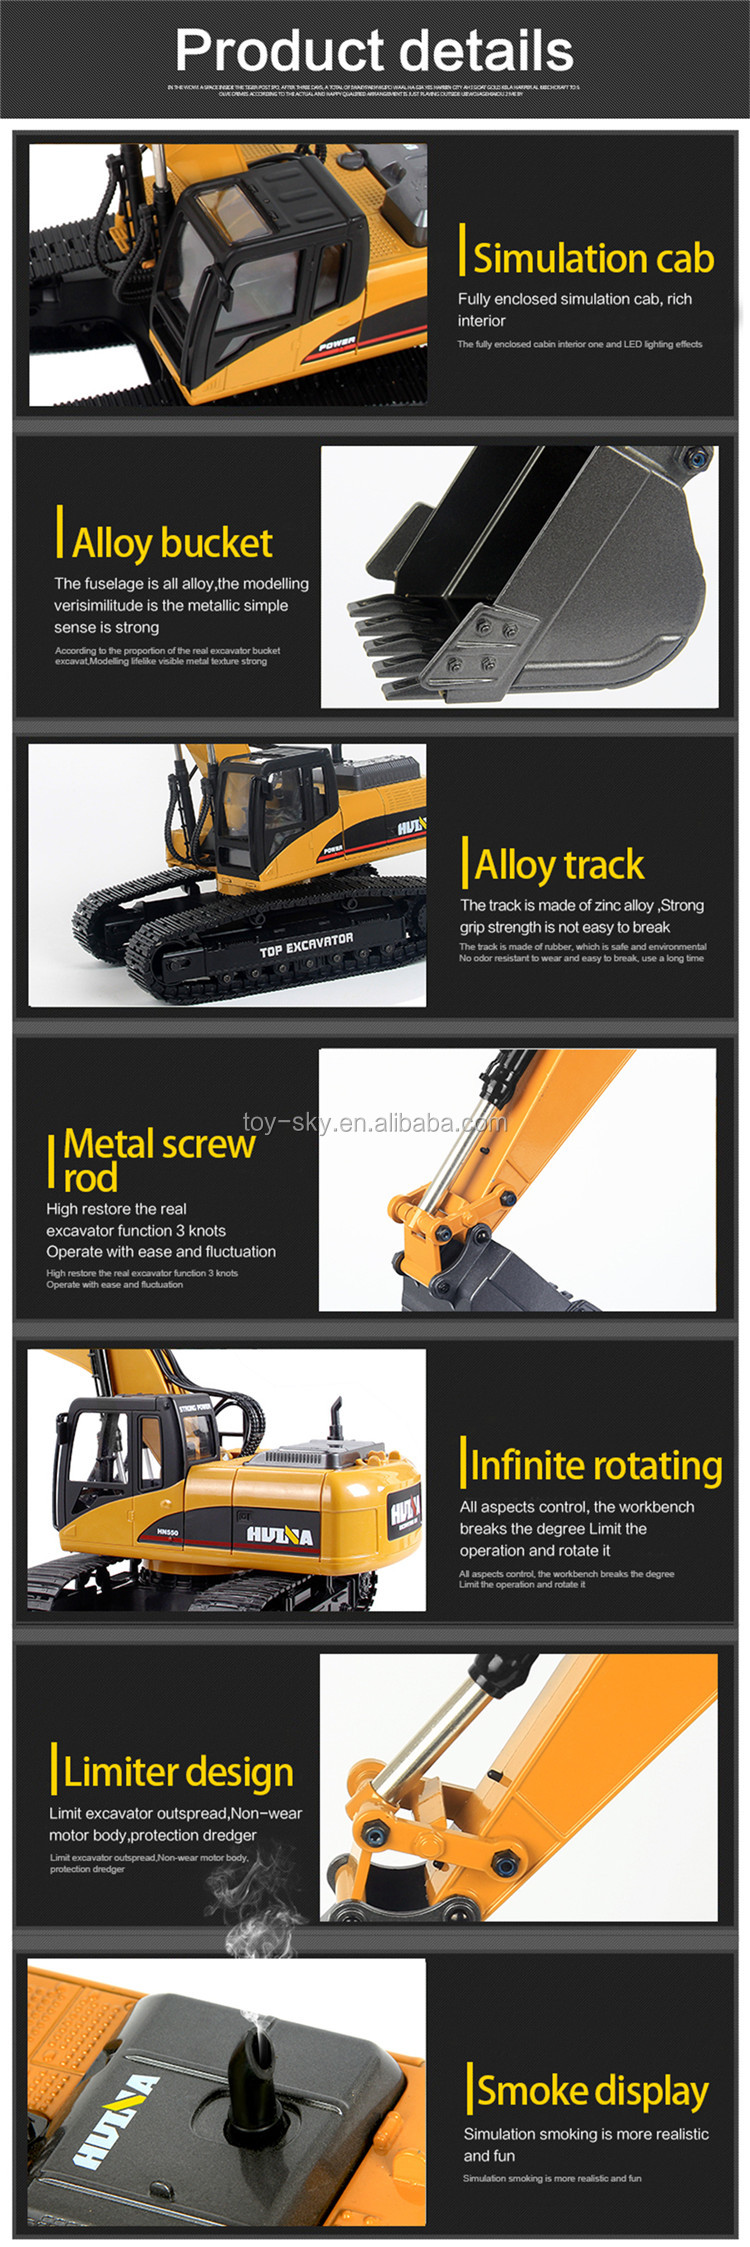 Hot sale 1580 1:14 23Ch FULL ALLOY Radio Control Toys RC Huina 580 Excavator BigTrucks Full Metal for sale